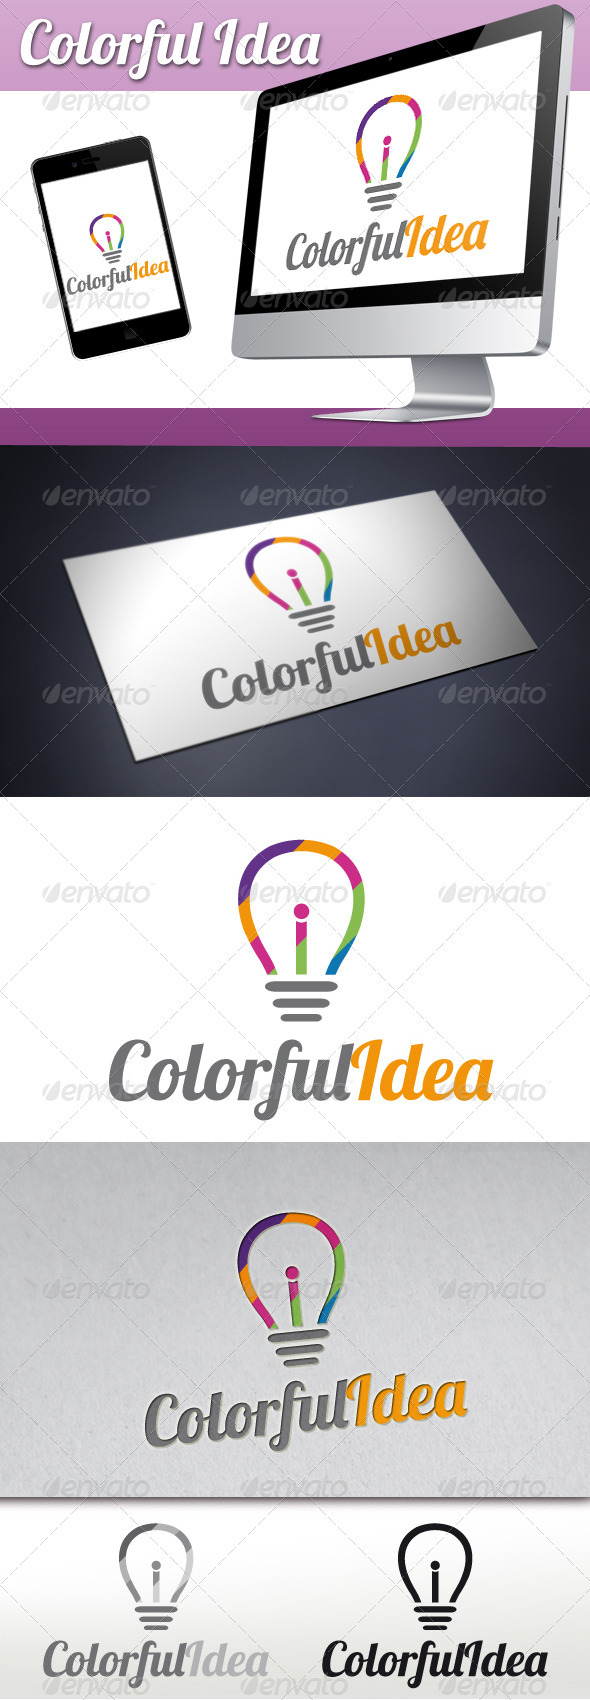 GraphicRiver Colorful Idea Logo 3317242